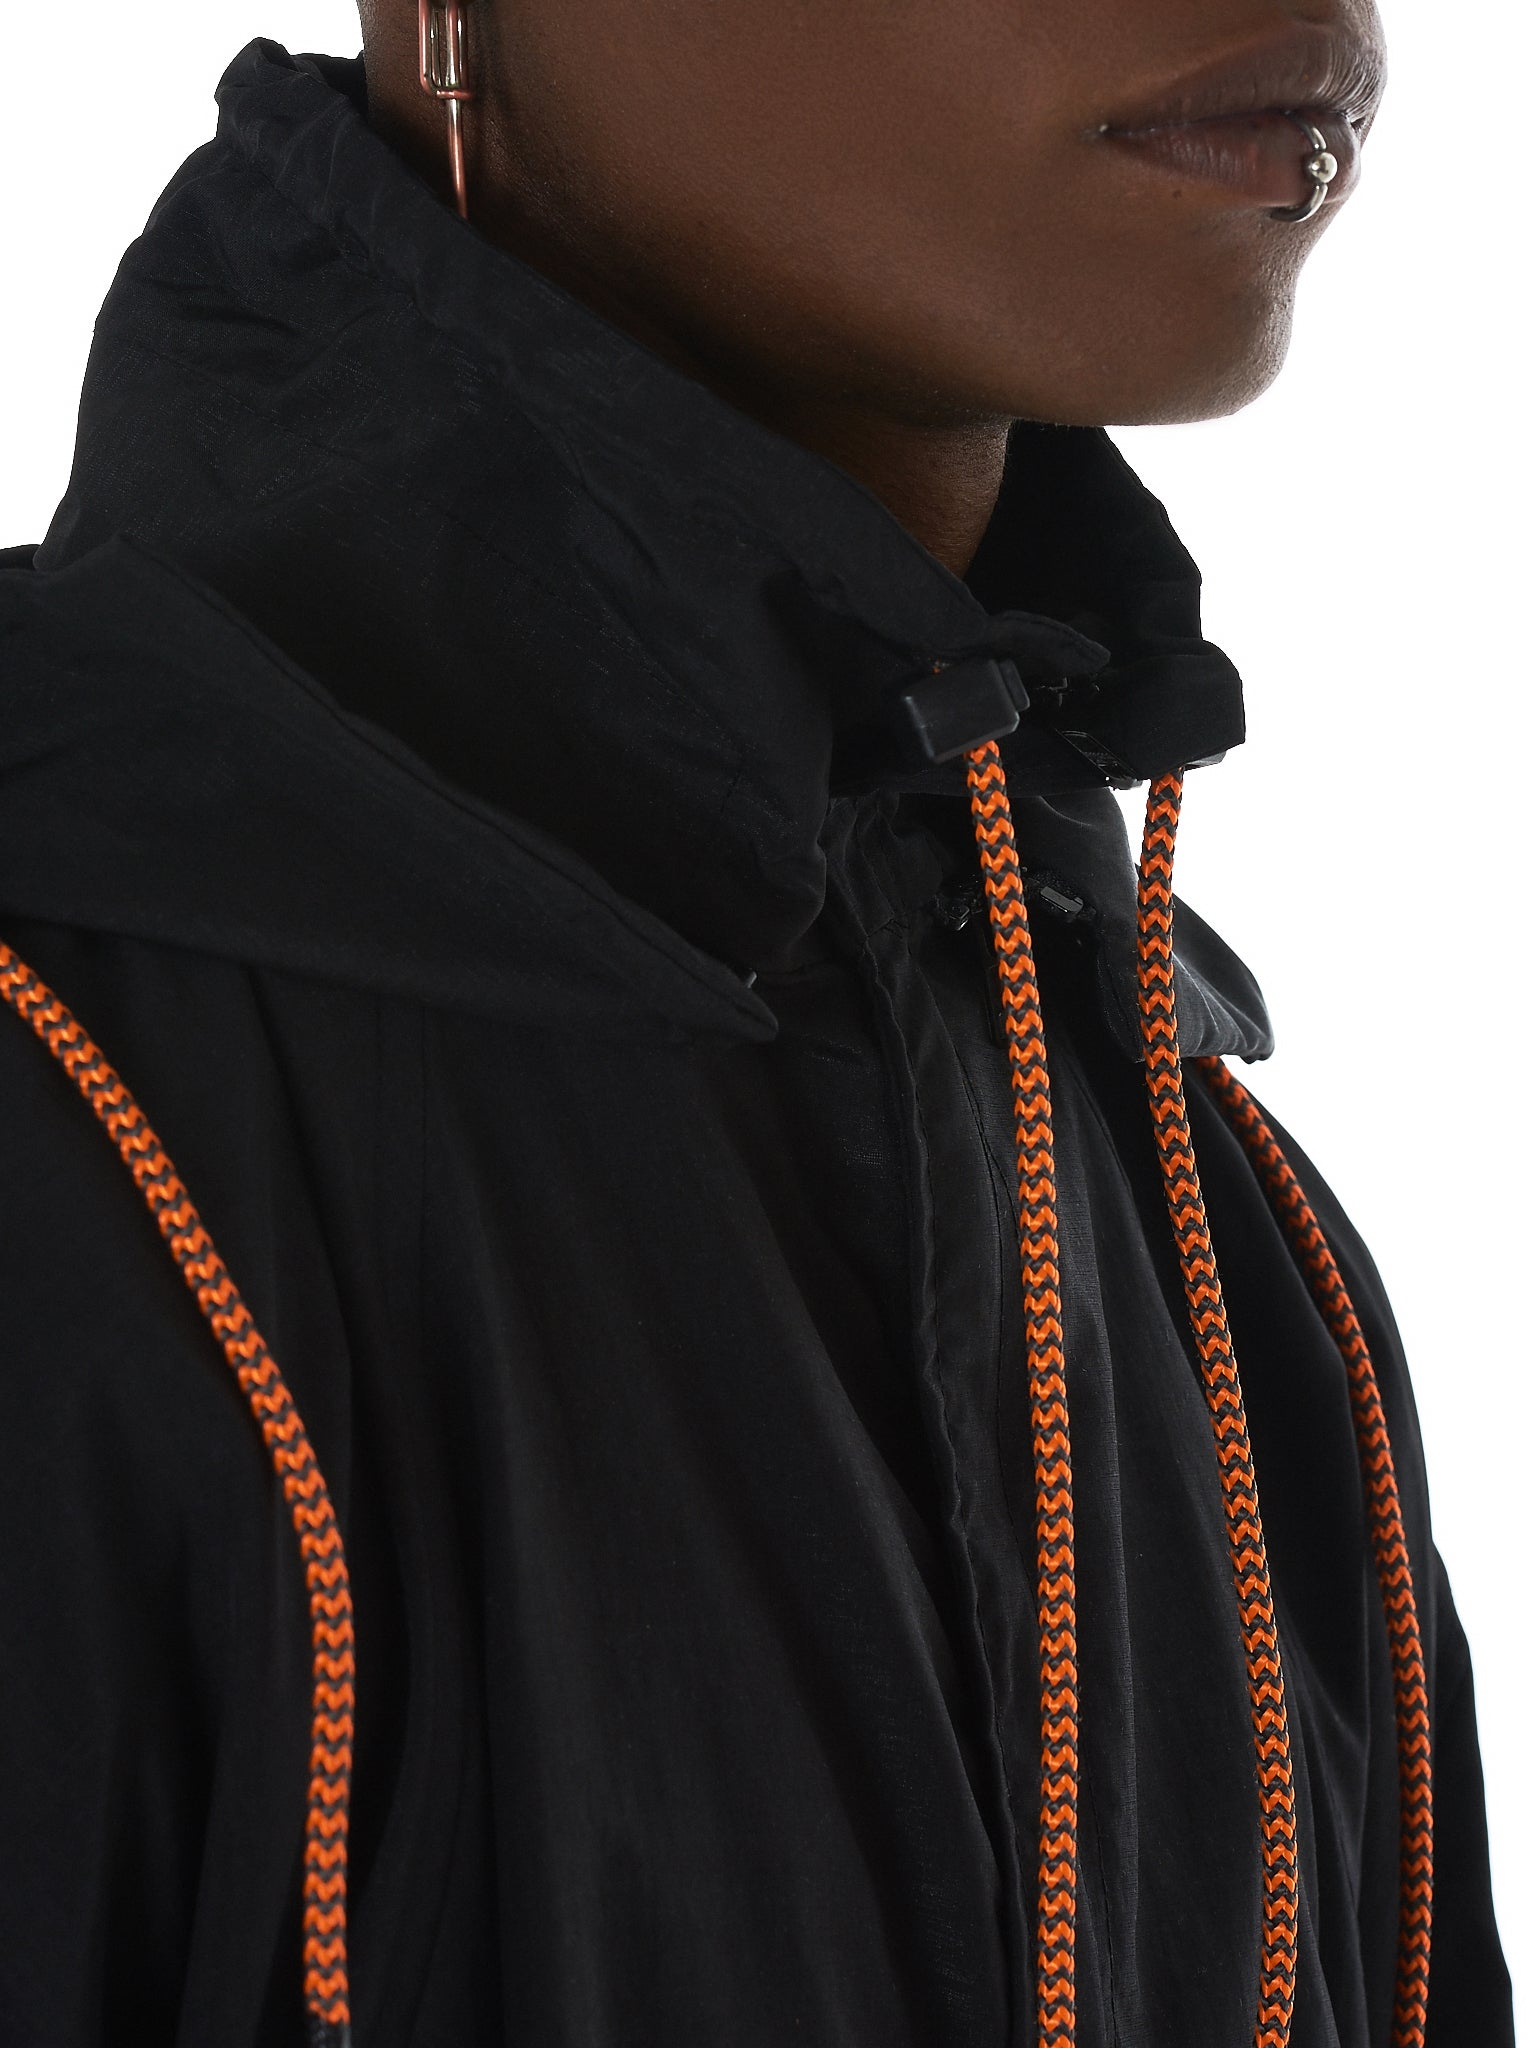 Tourne De Transmission Jacket -Hlorenzo detail 2